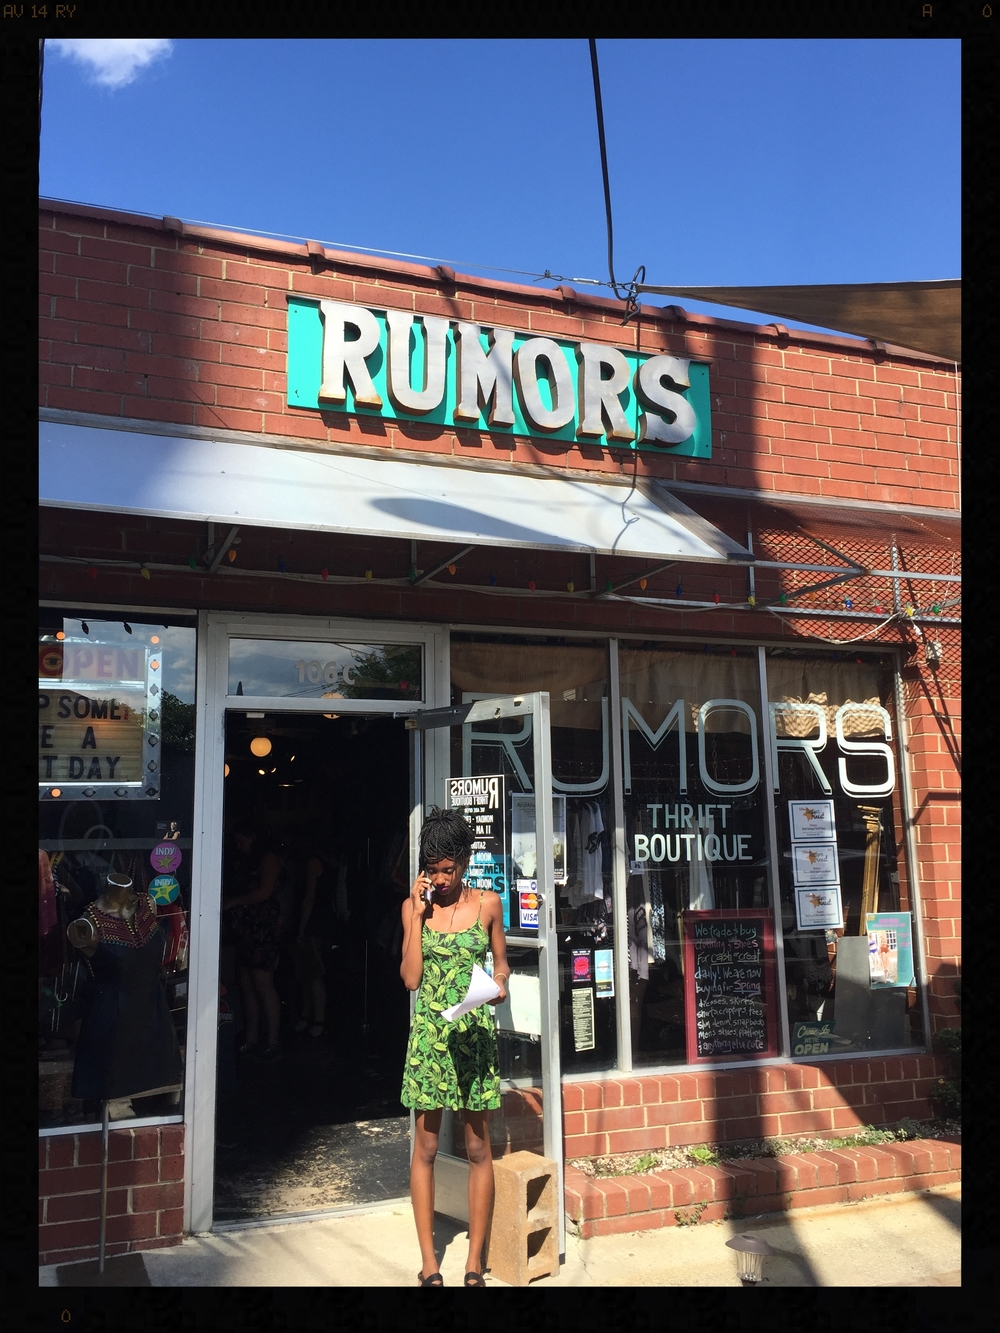 Rumors Boutique